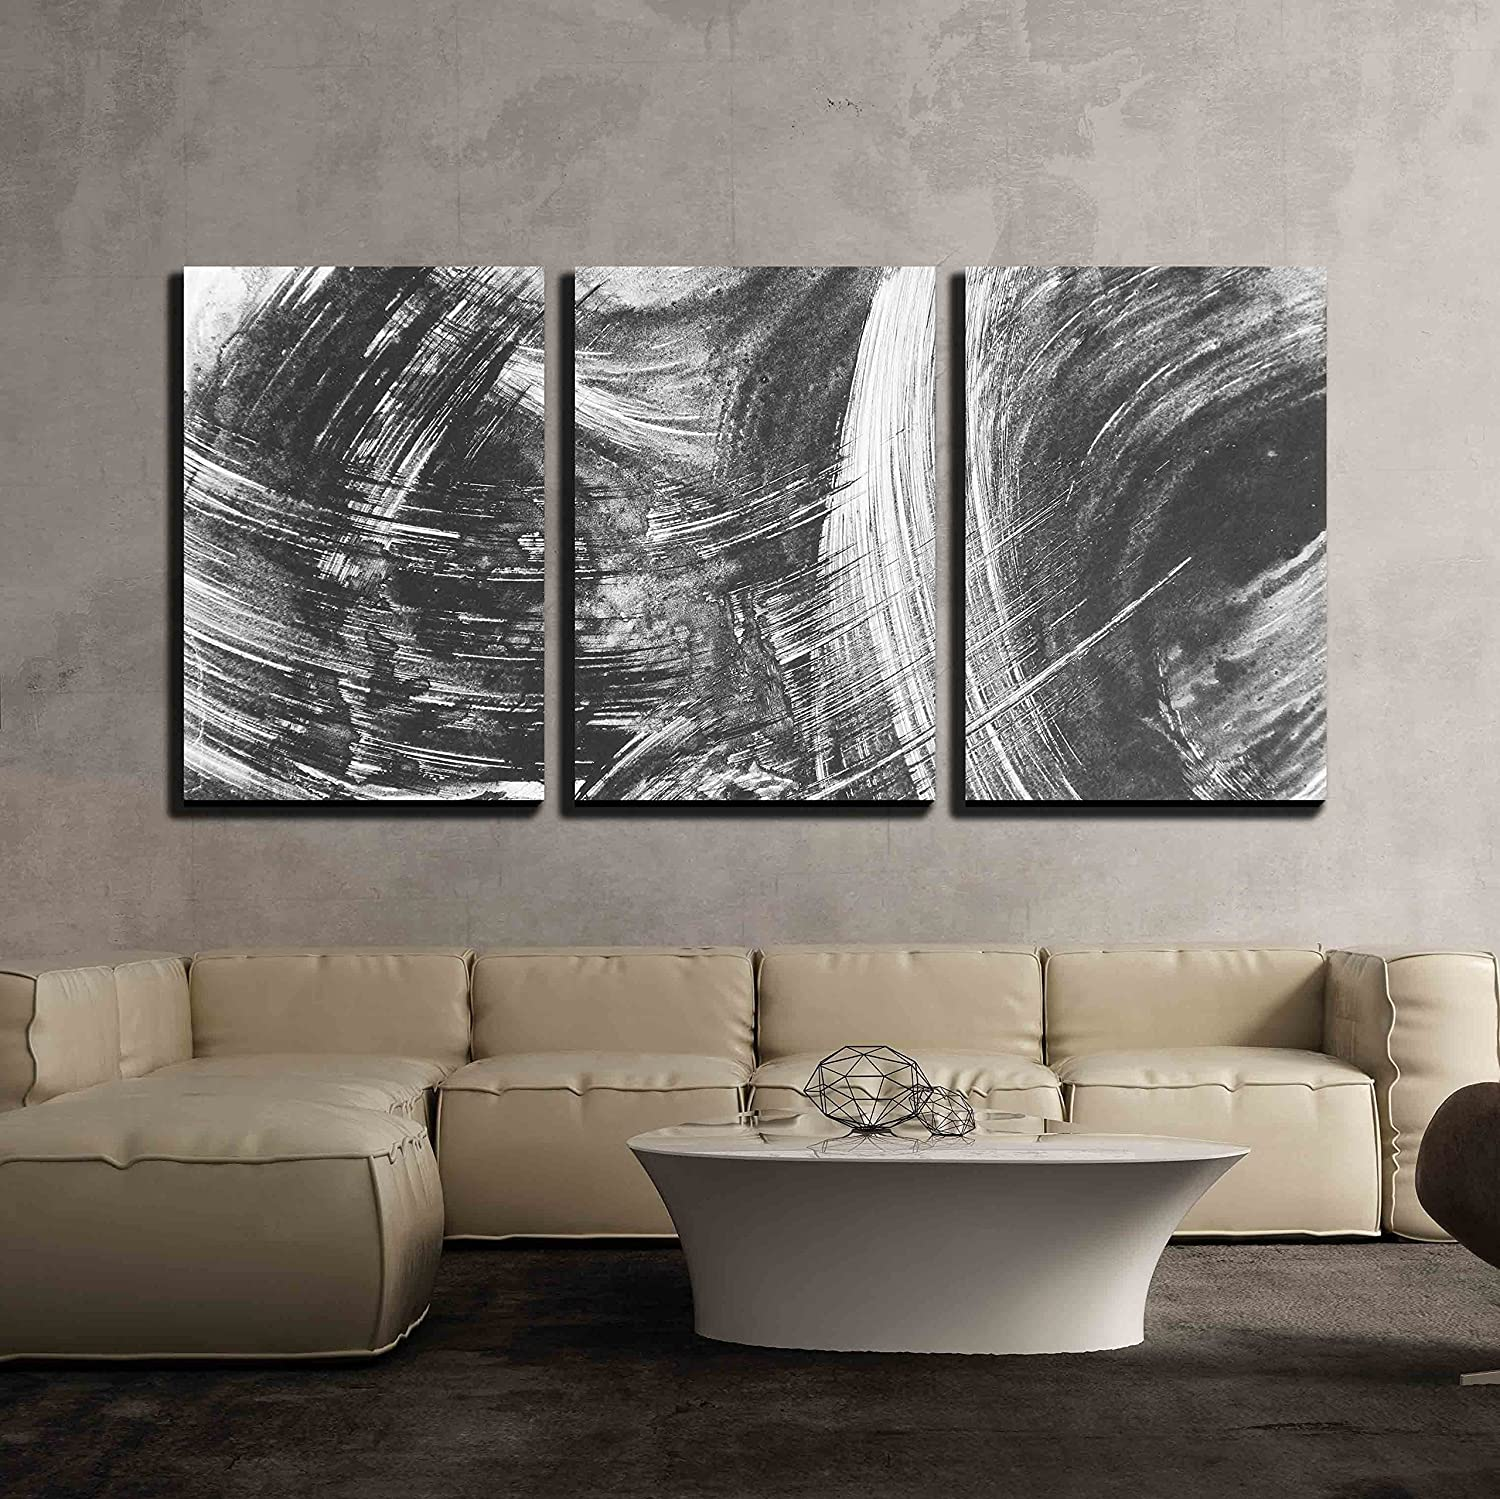 Wall26 - 3 Piece Canvas Wall Art - Black and White Abstract Brush Painting - Modern Home Decor Stretched and Framed Ready to Hang - 24 x36 x3 Panels